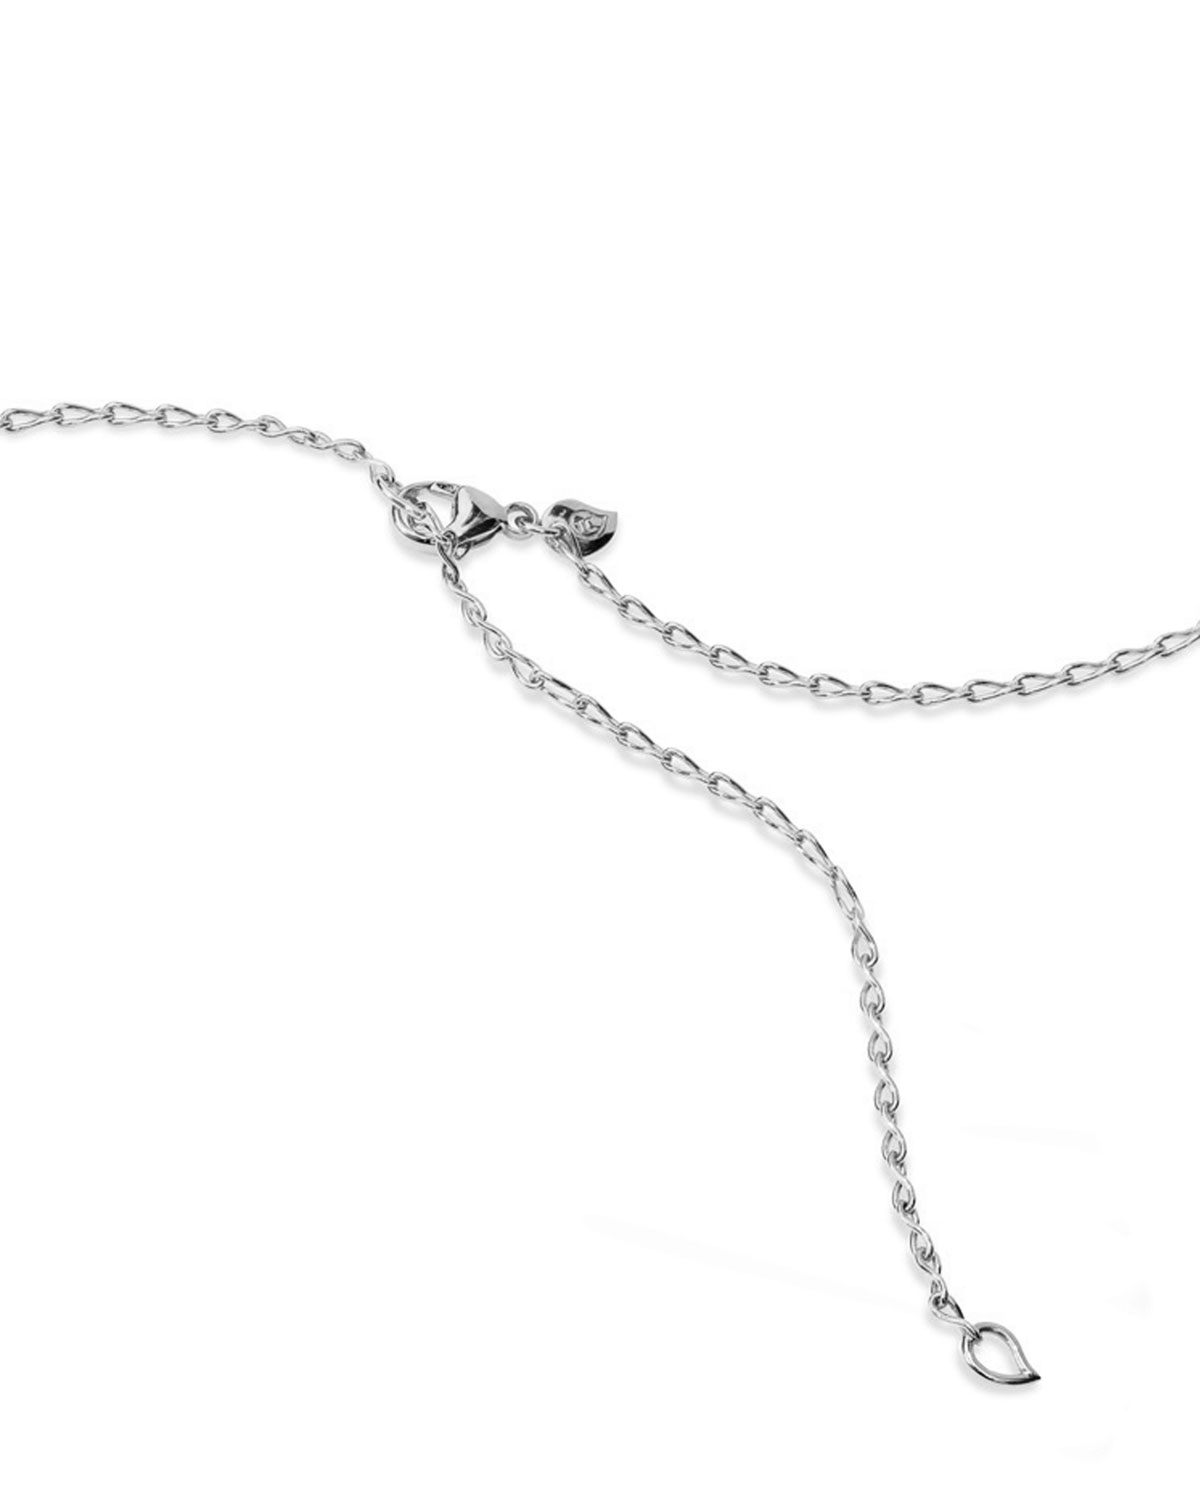 18k White Gold Chain Necklace